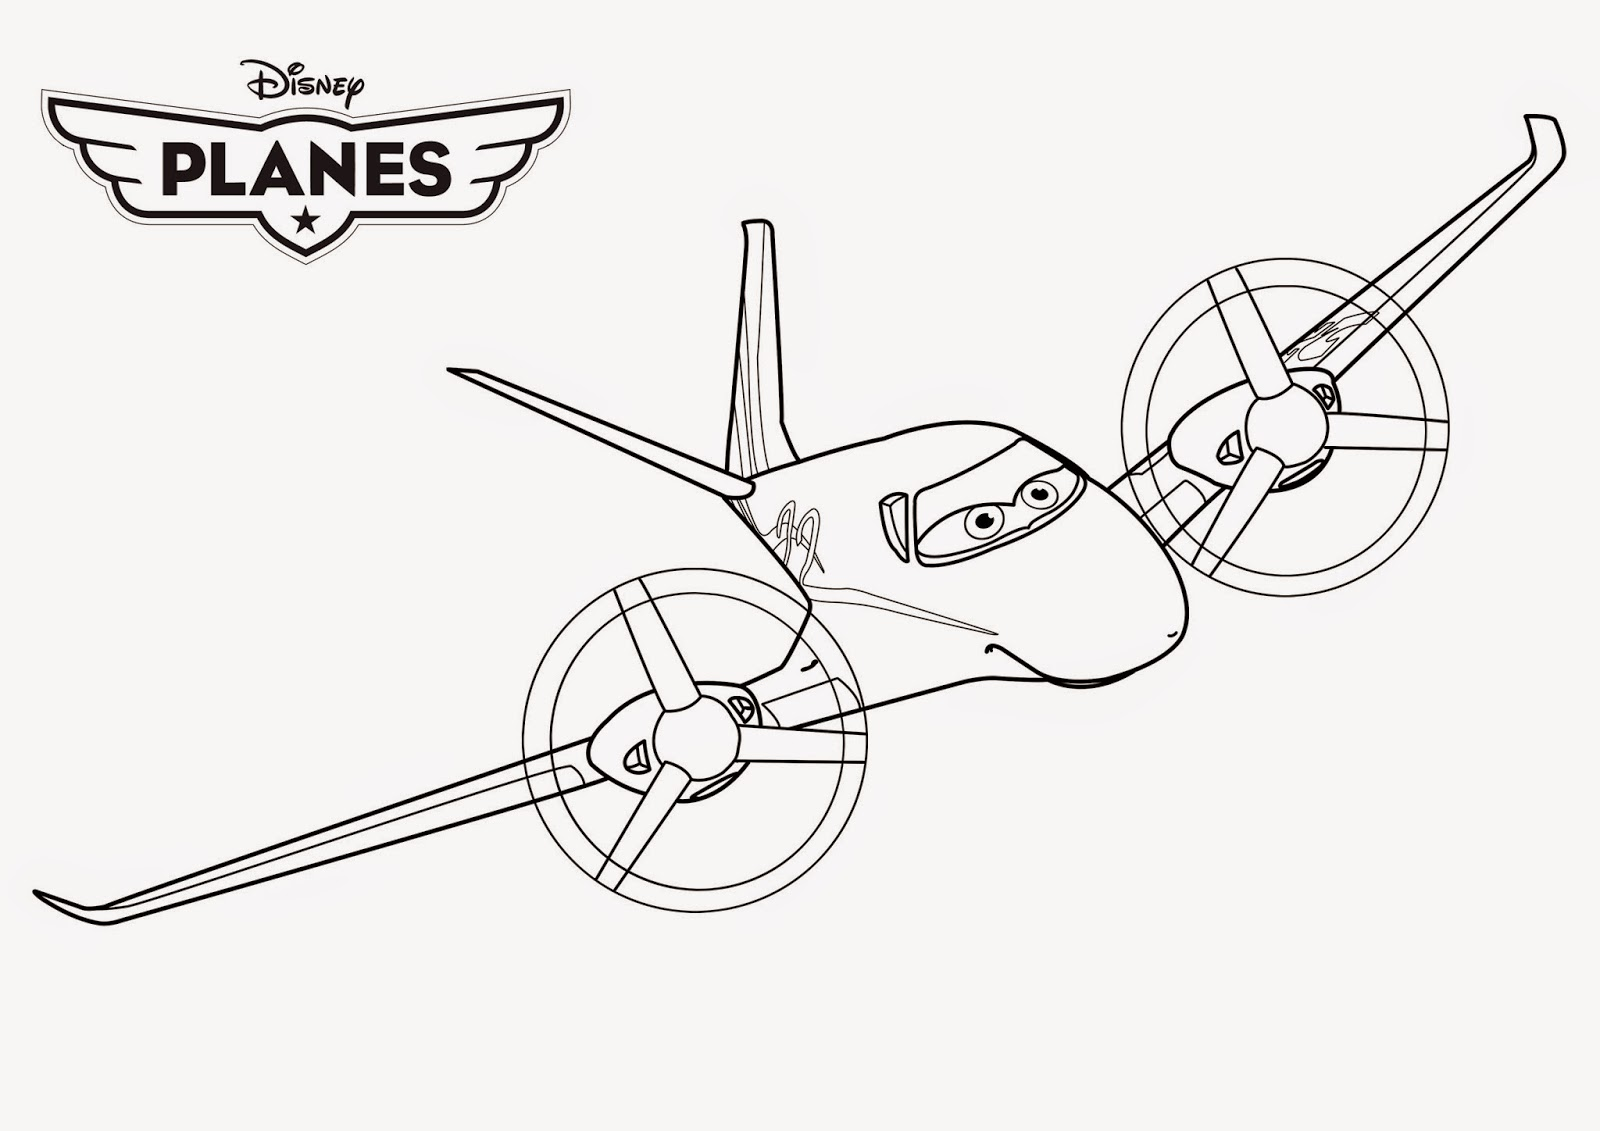 Disney Planes Coloring Pages : Disney planes coloring drawing free wallpaper anggela